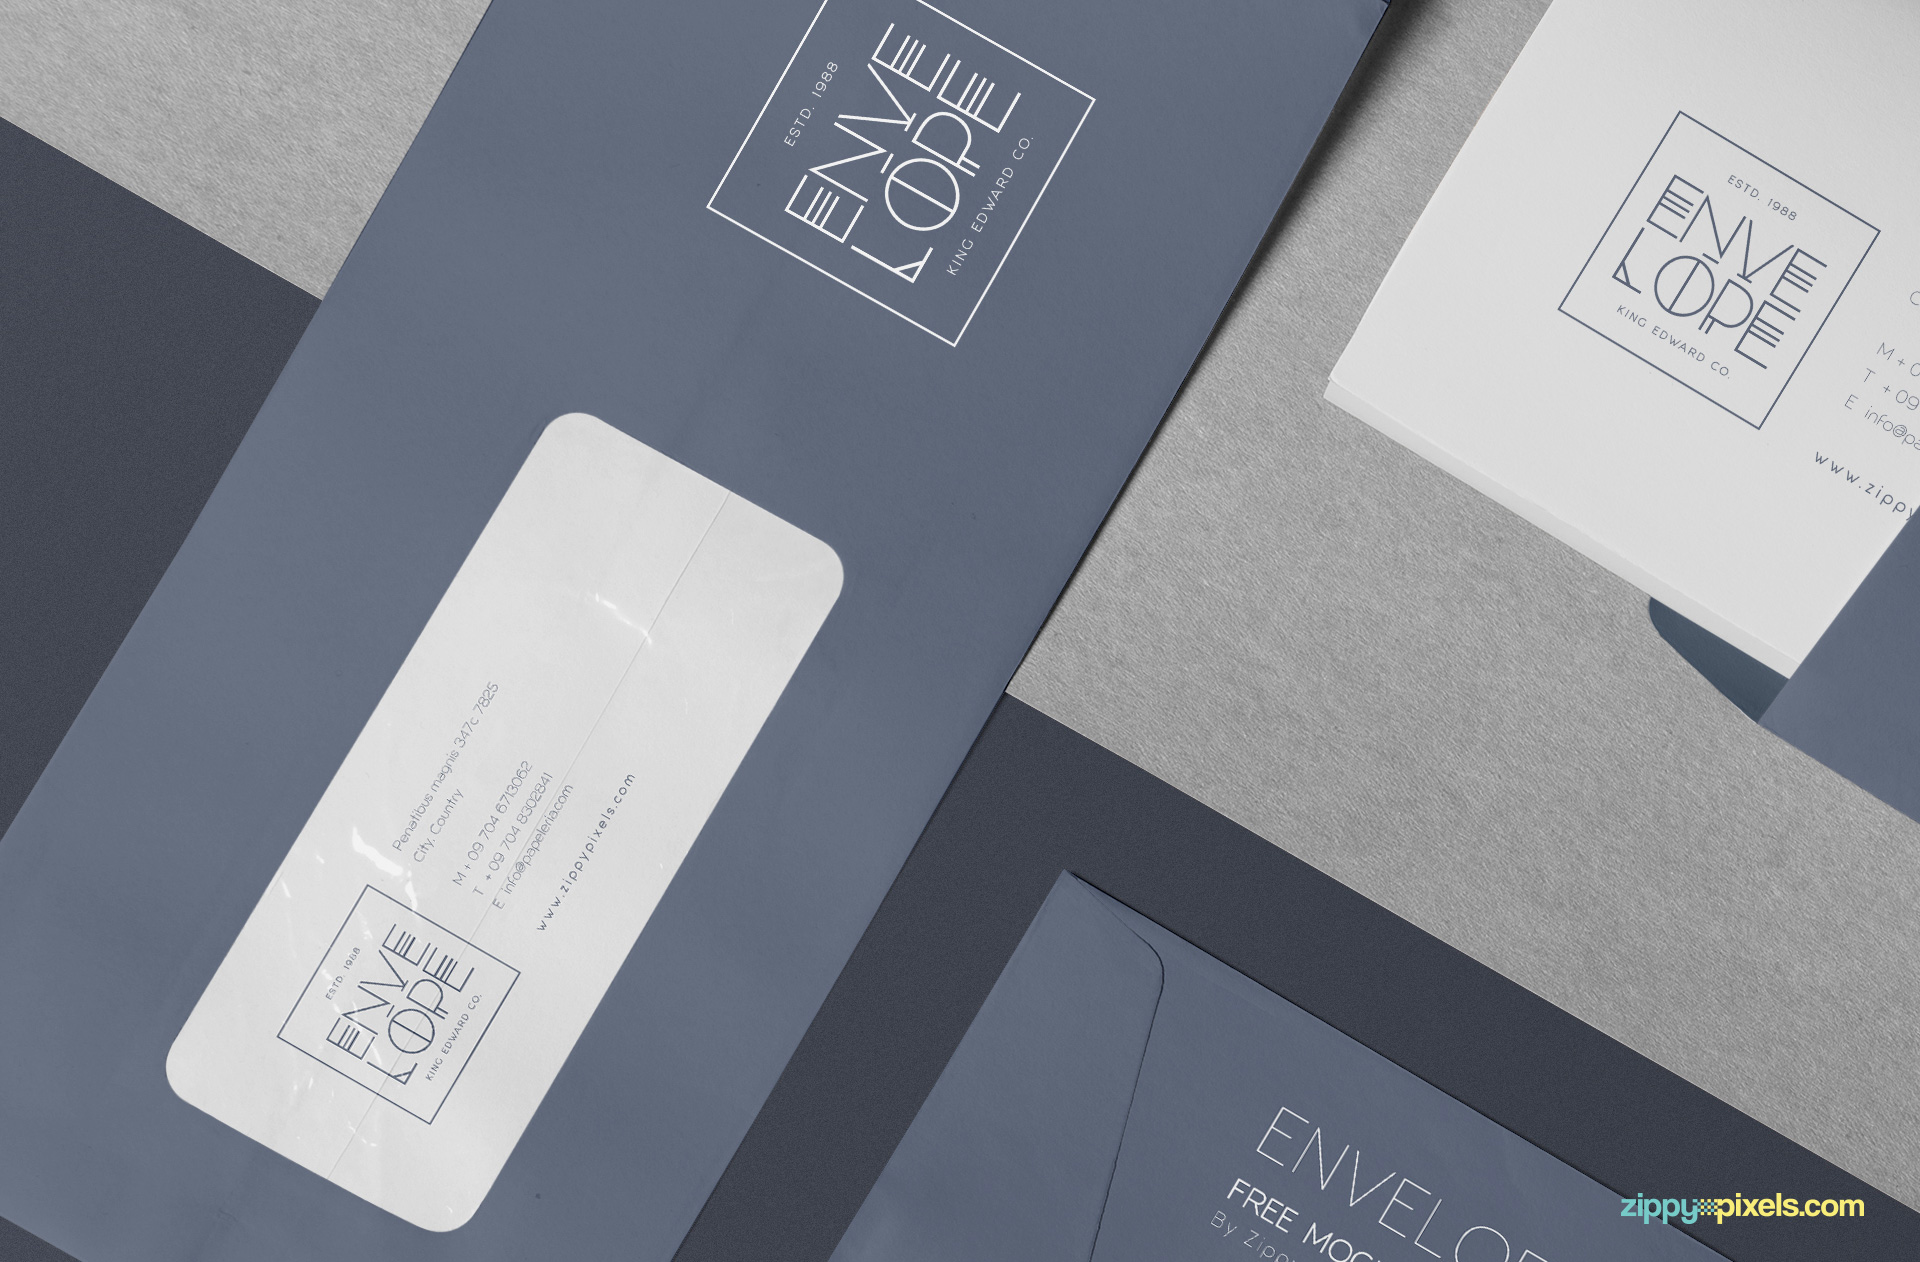 Transparent area of envelope mockup showing letterhead.